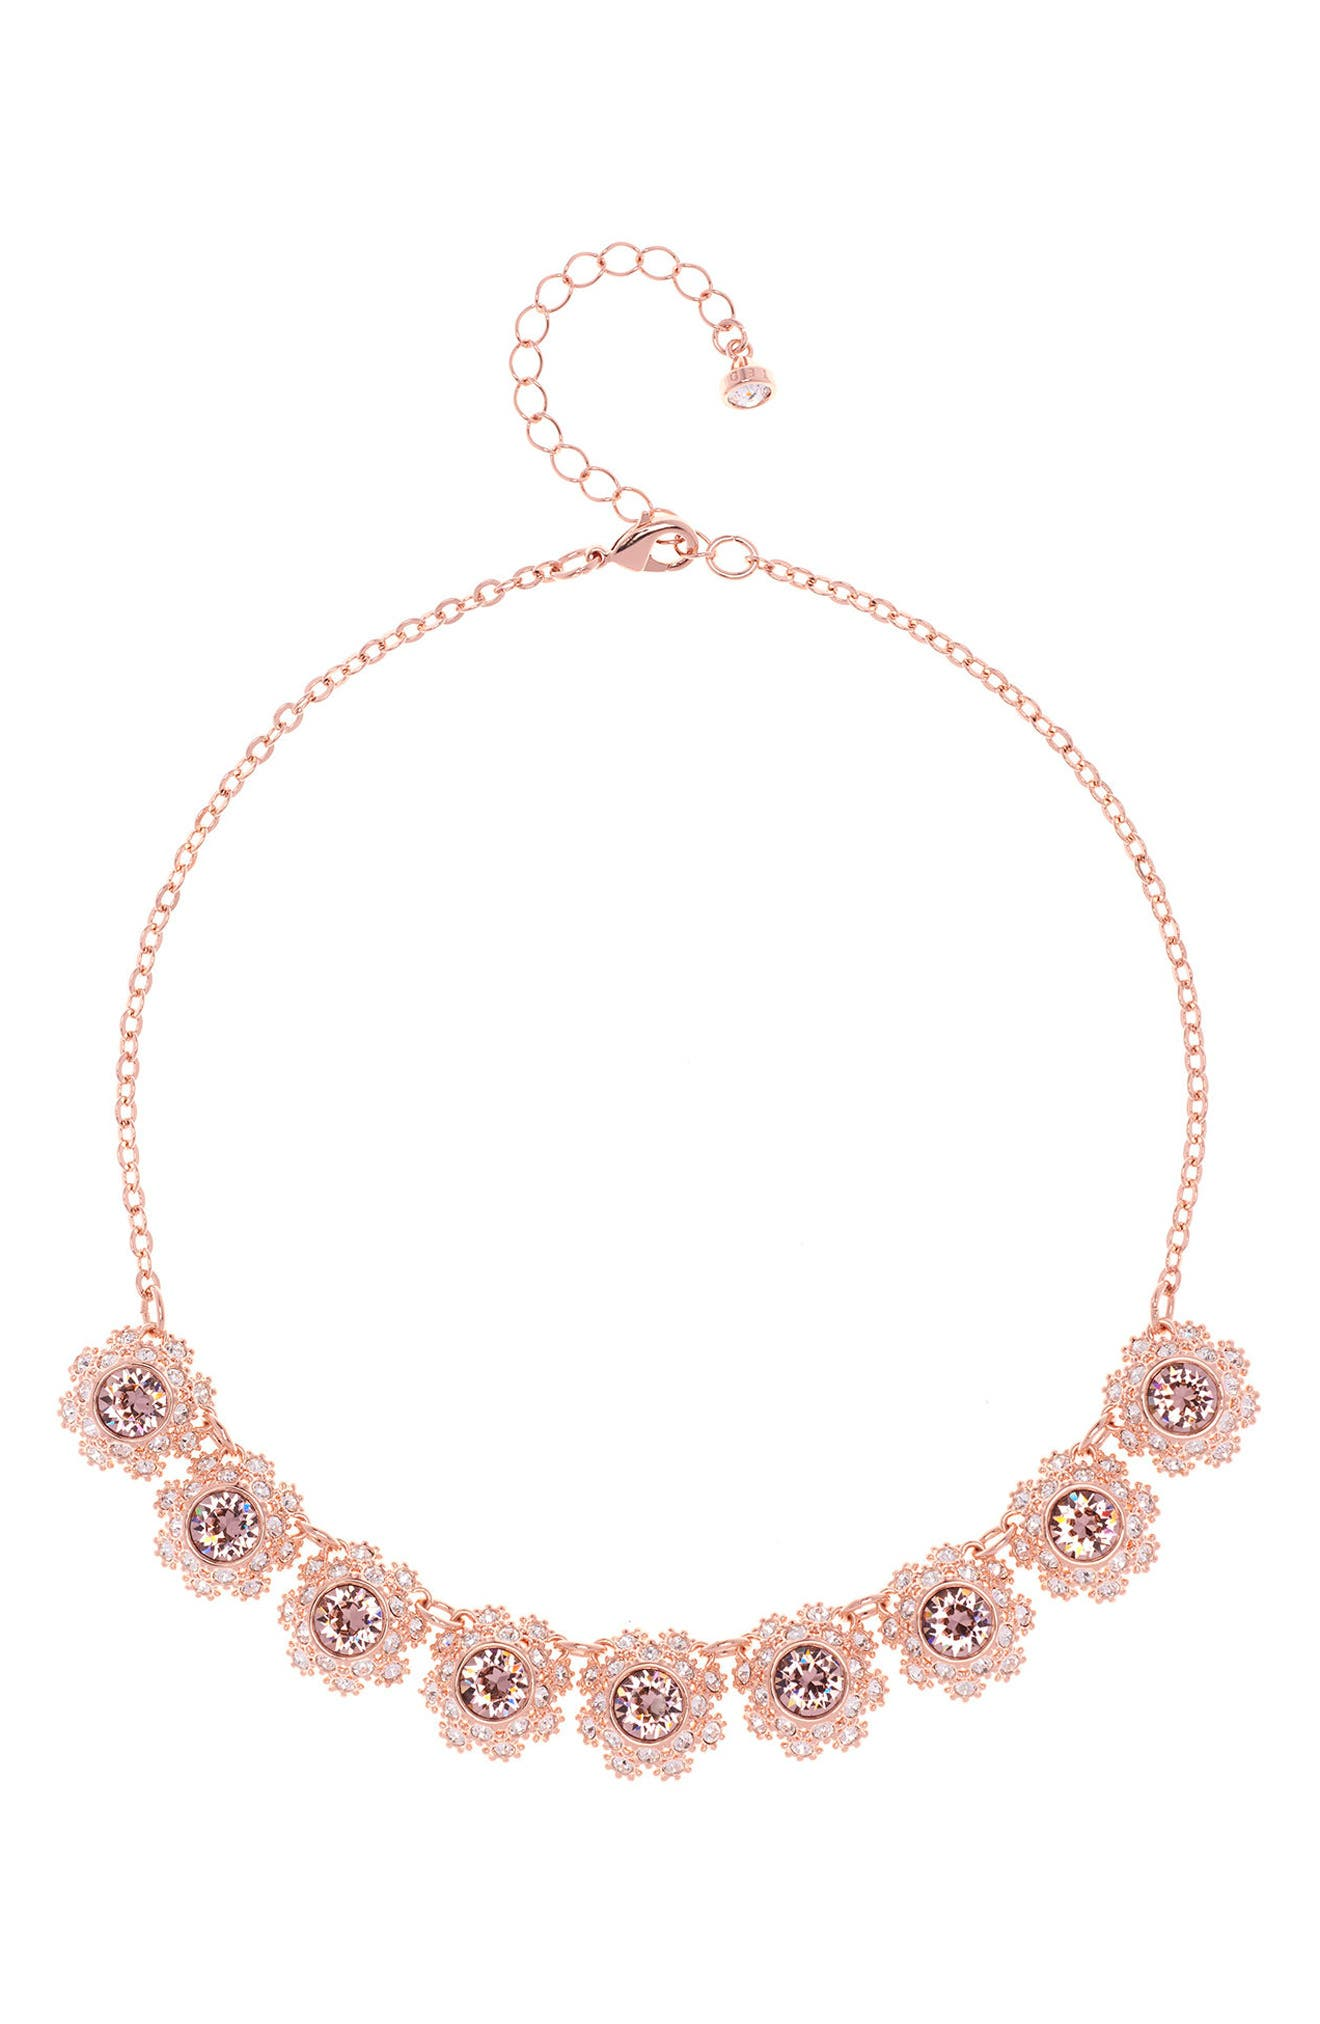 Crystal Daisy Lace Collar Necklace,                         Main,                         color, 660